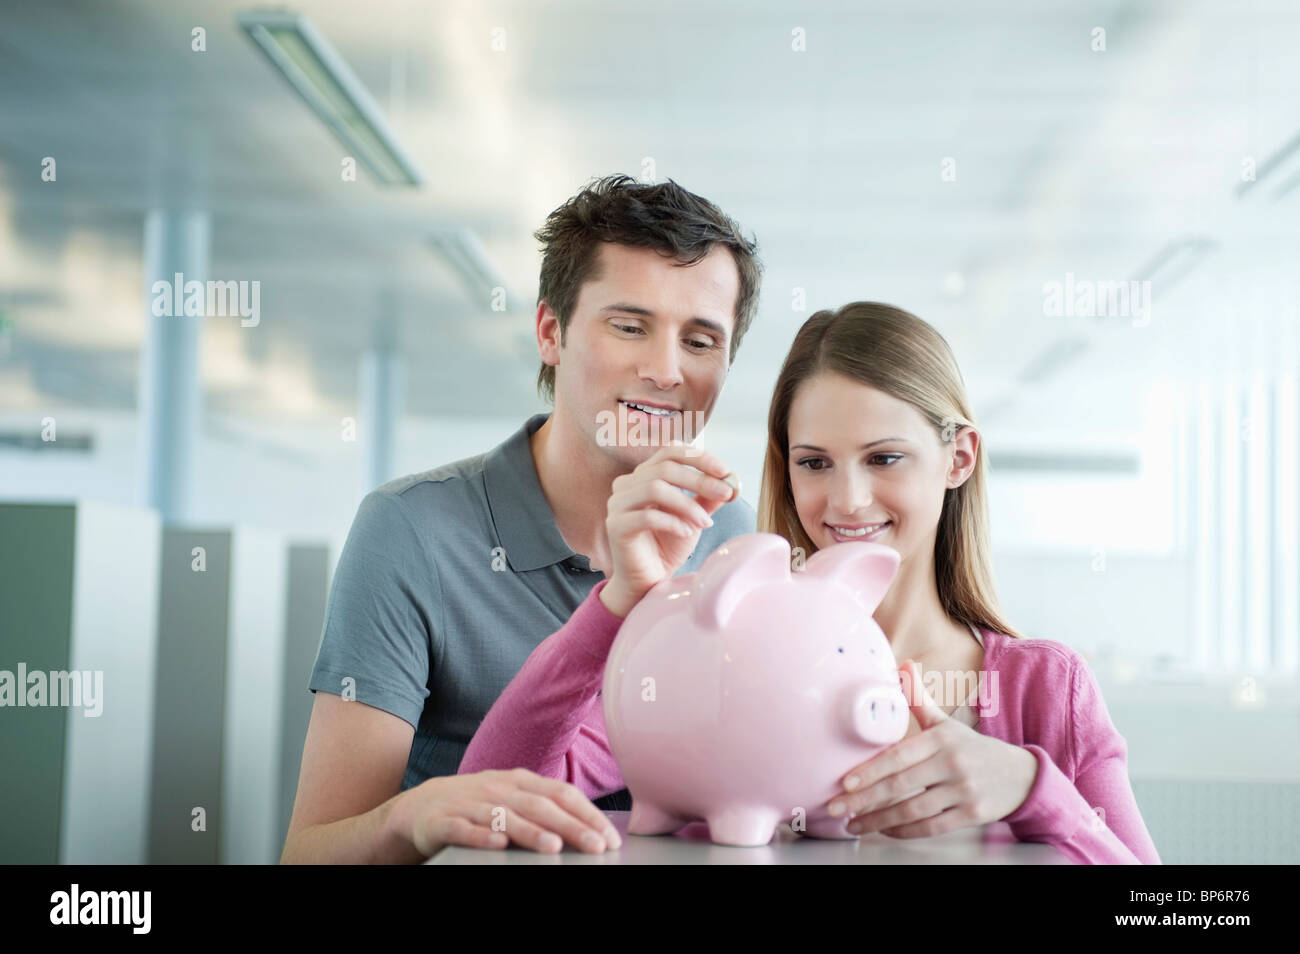 Business executives inserting a coin into a piggy bank - Stock Image